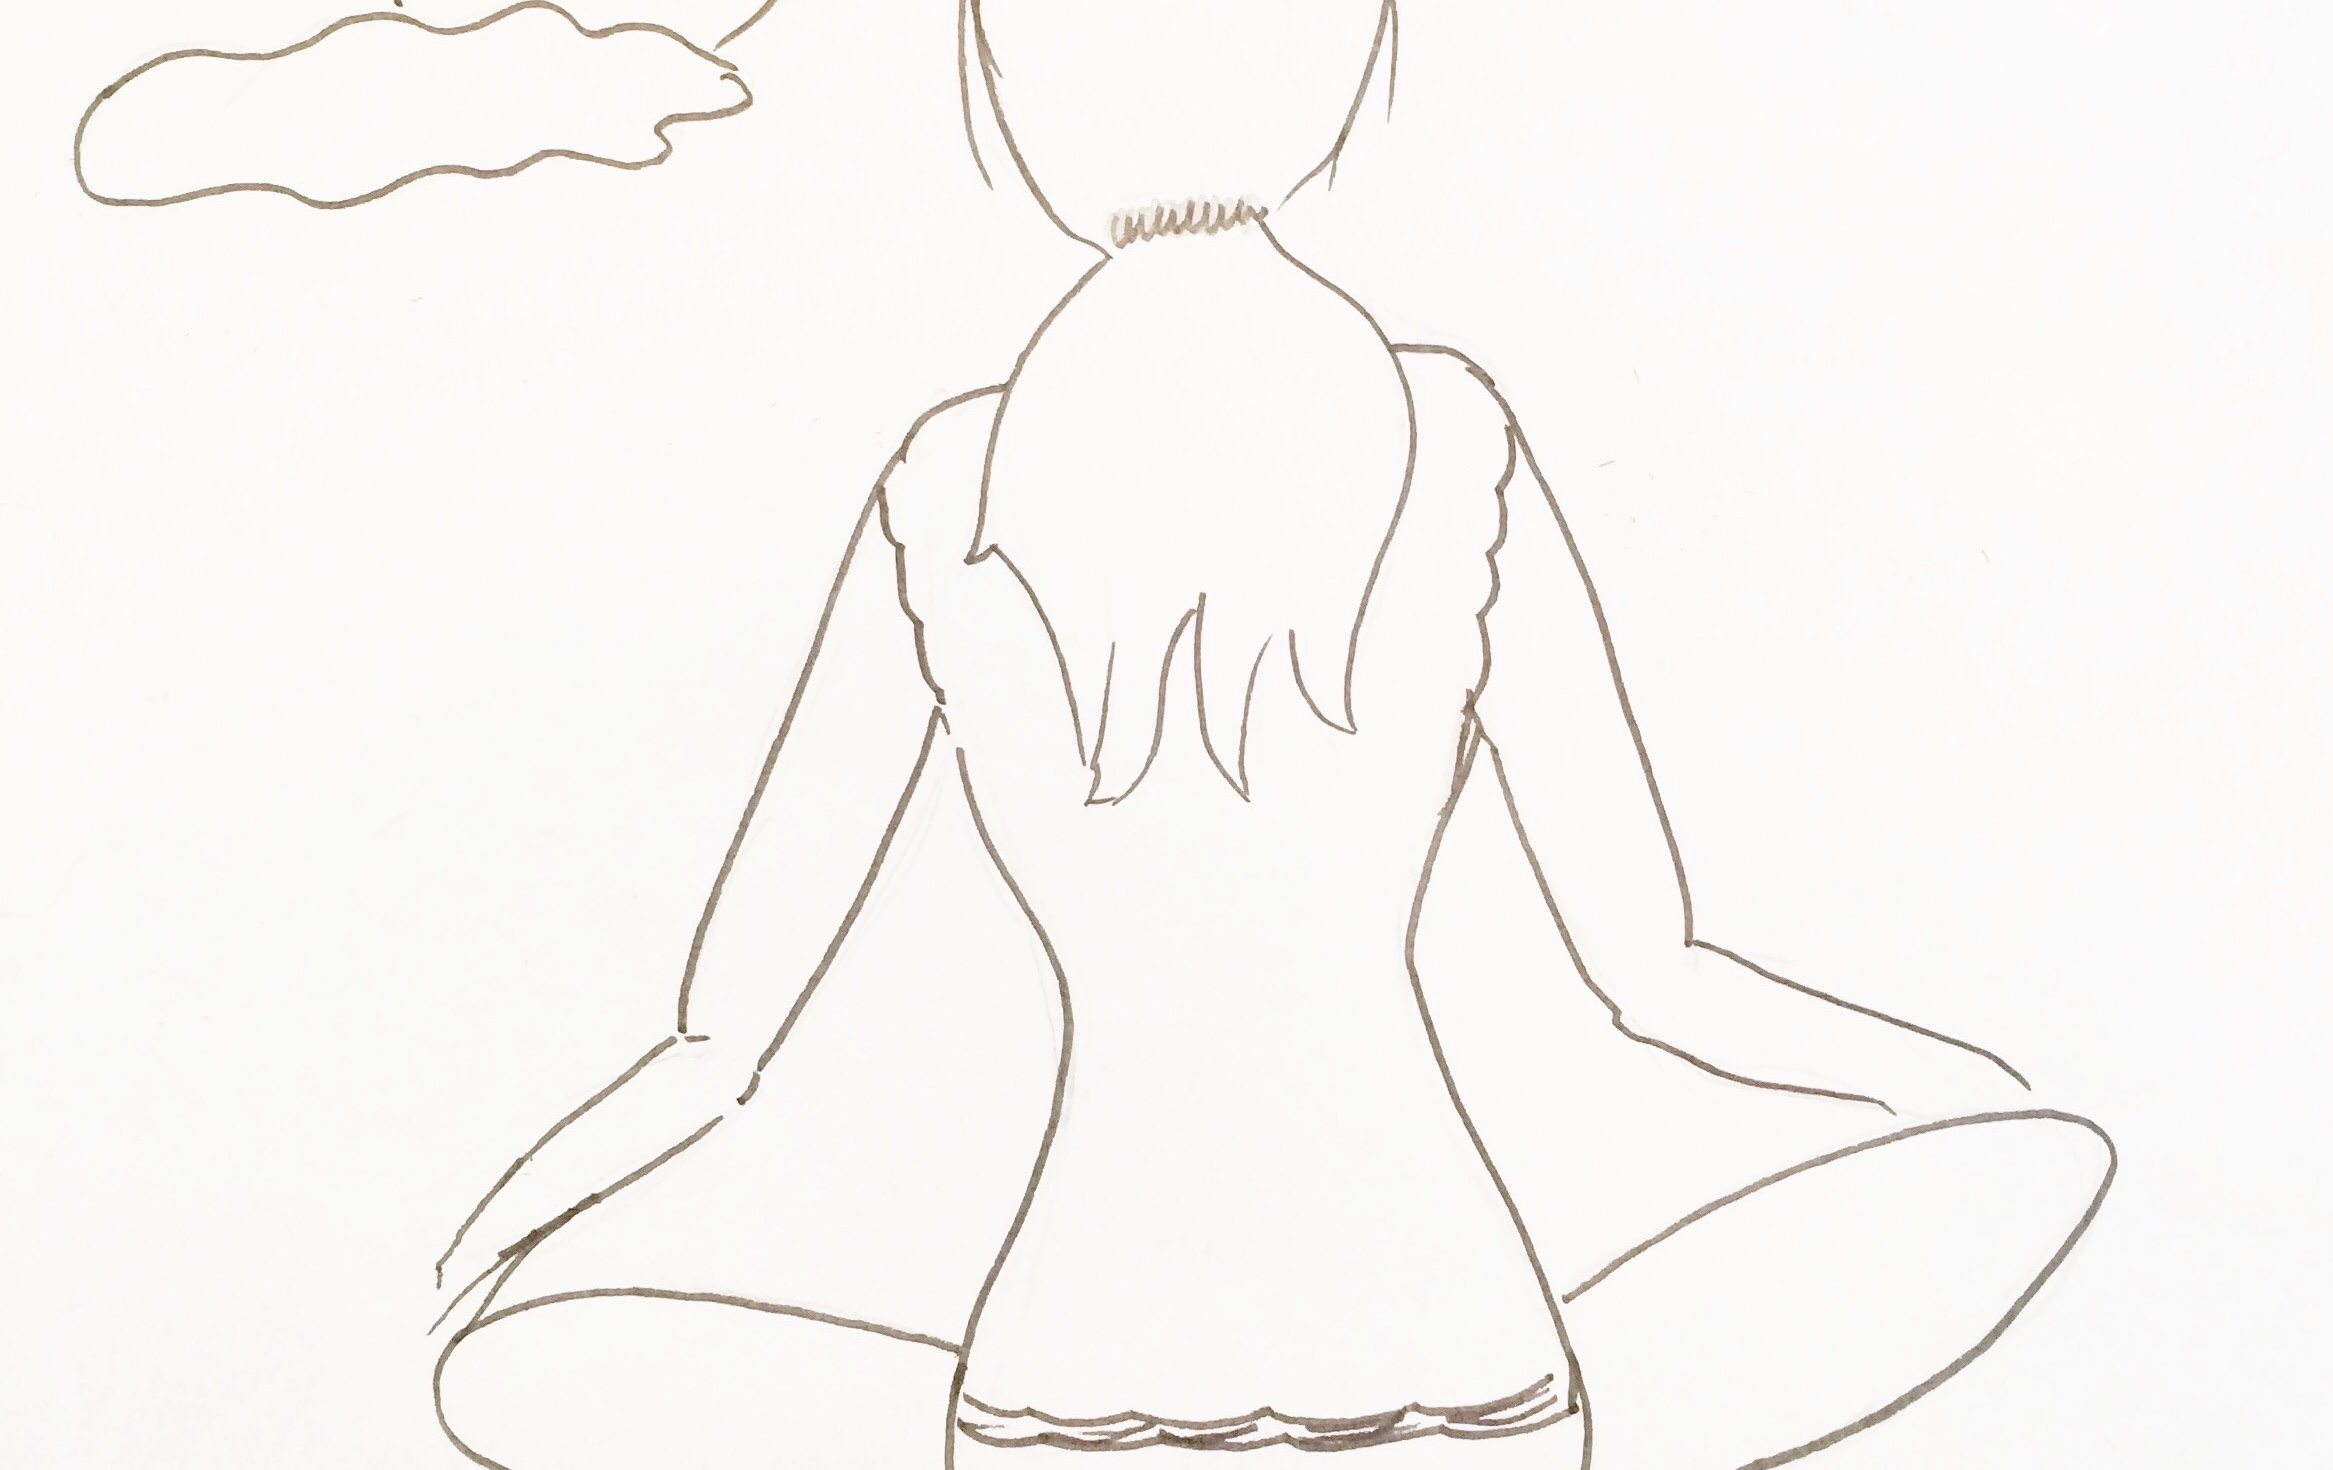 My relationship with meditation